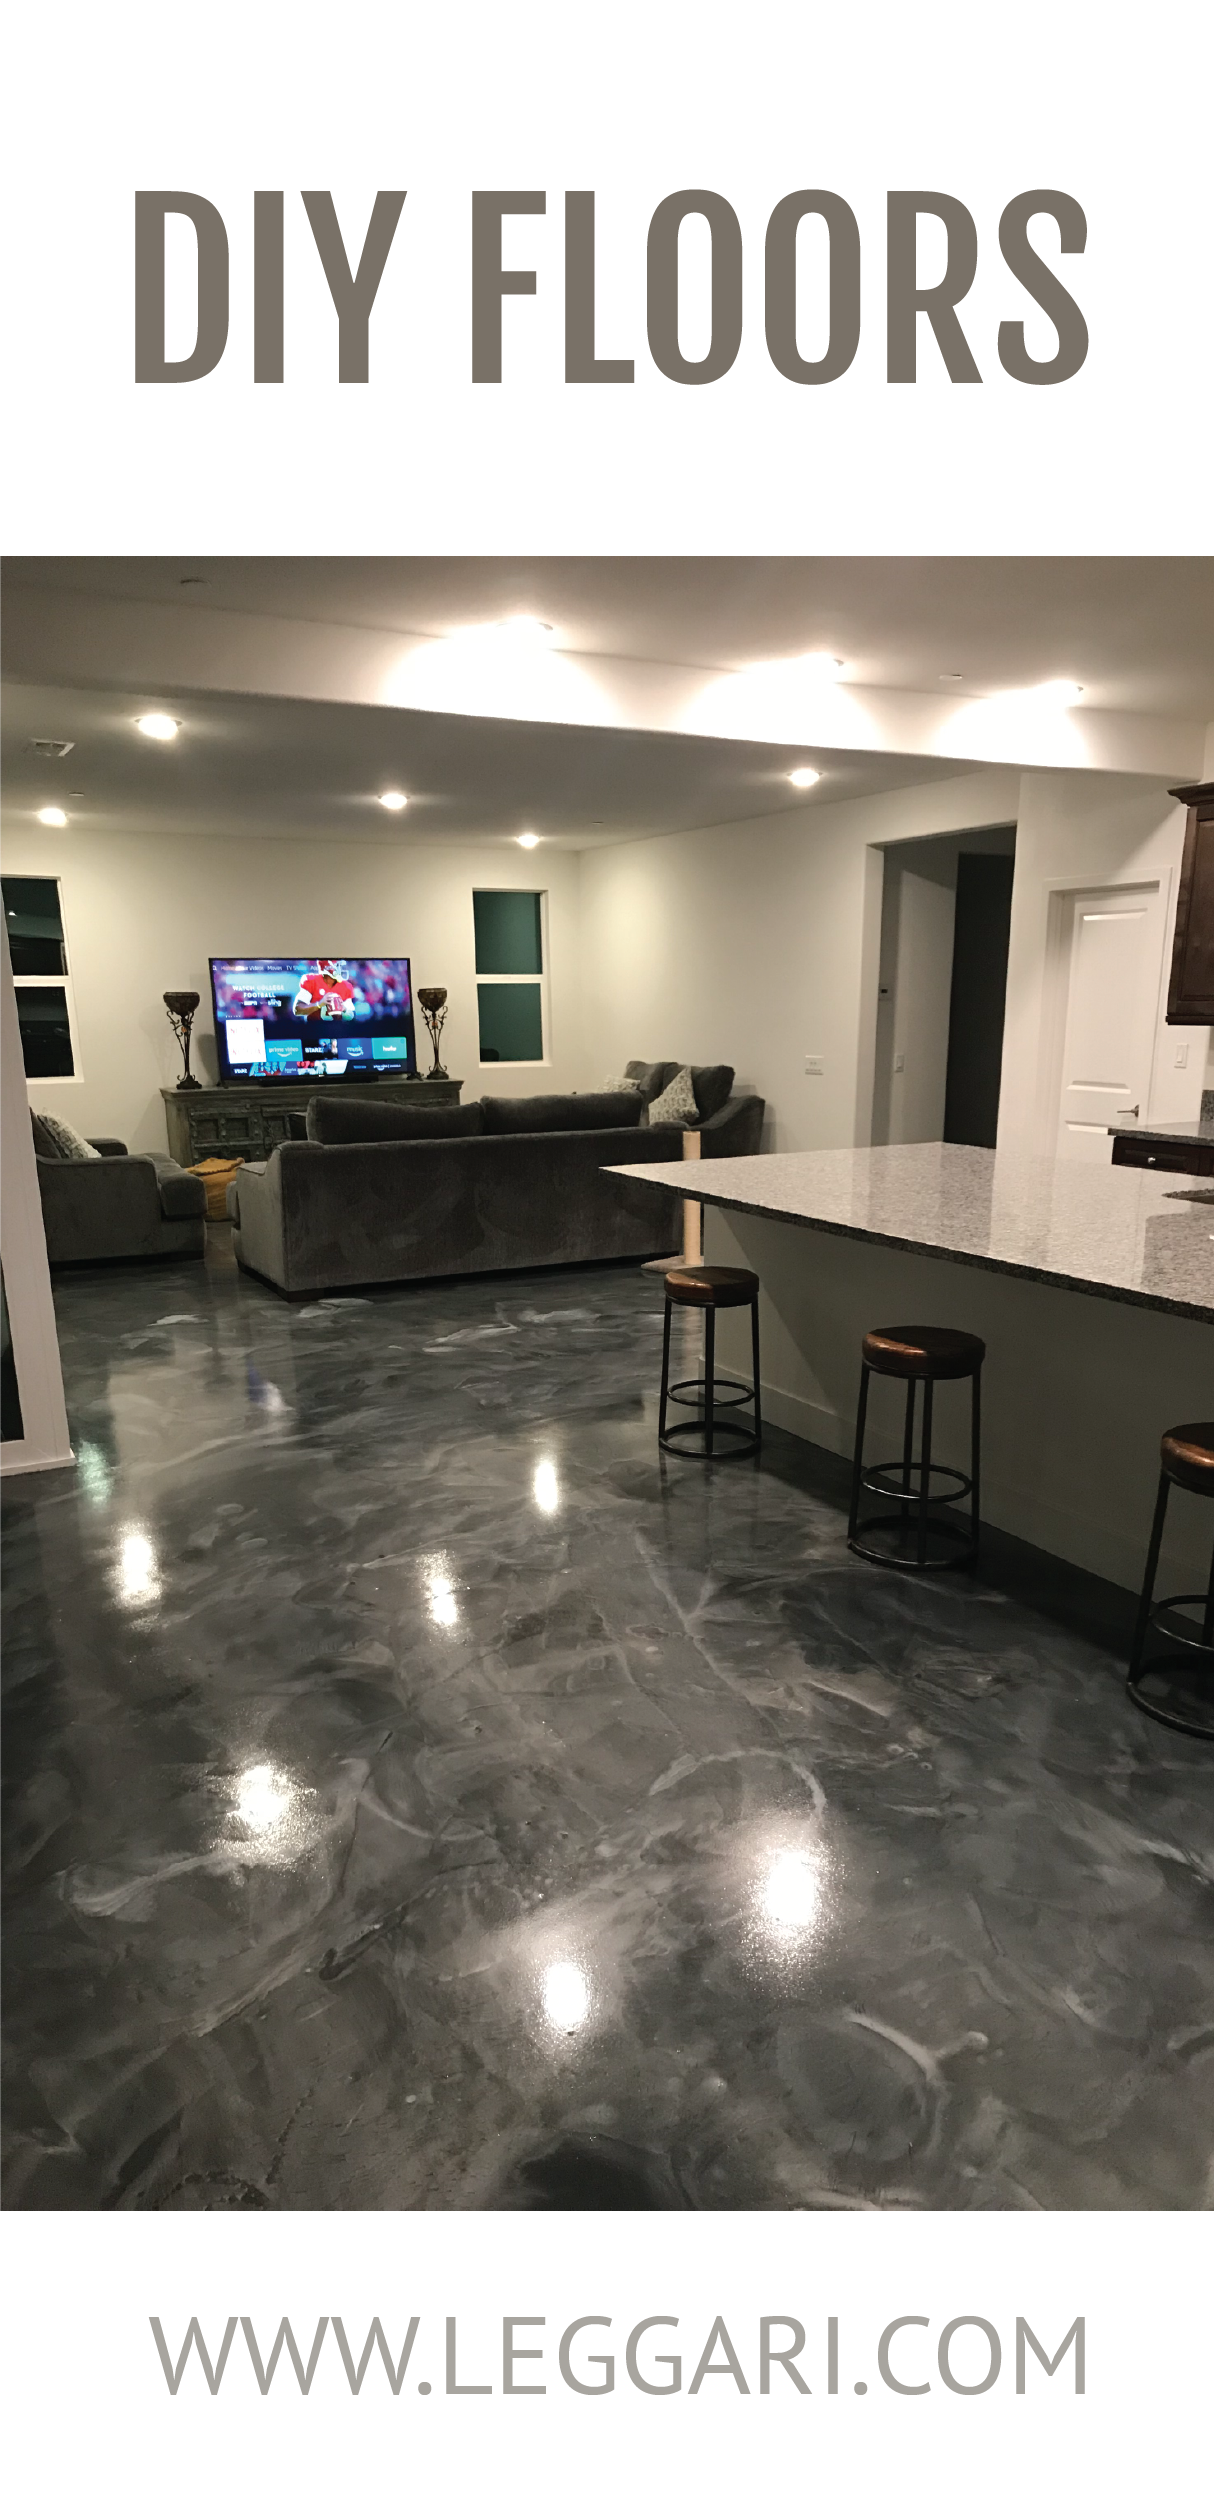 Remodel Your Home And Start With Your Floors Order A Leggari Metallic Epoxy Kit And Give Your Home The Look You Ve Been Dre Best Flooring Flooring Epoxy Floor